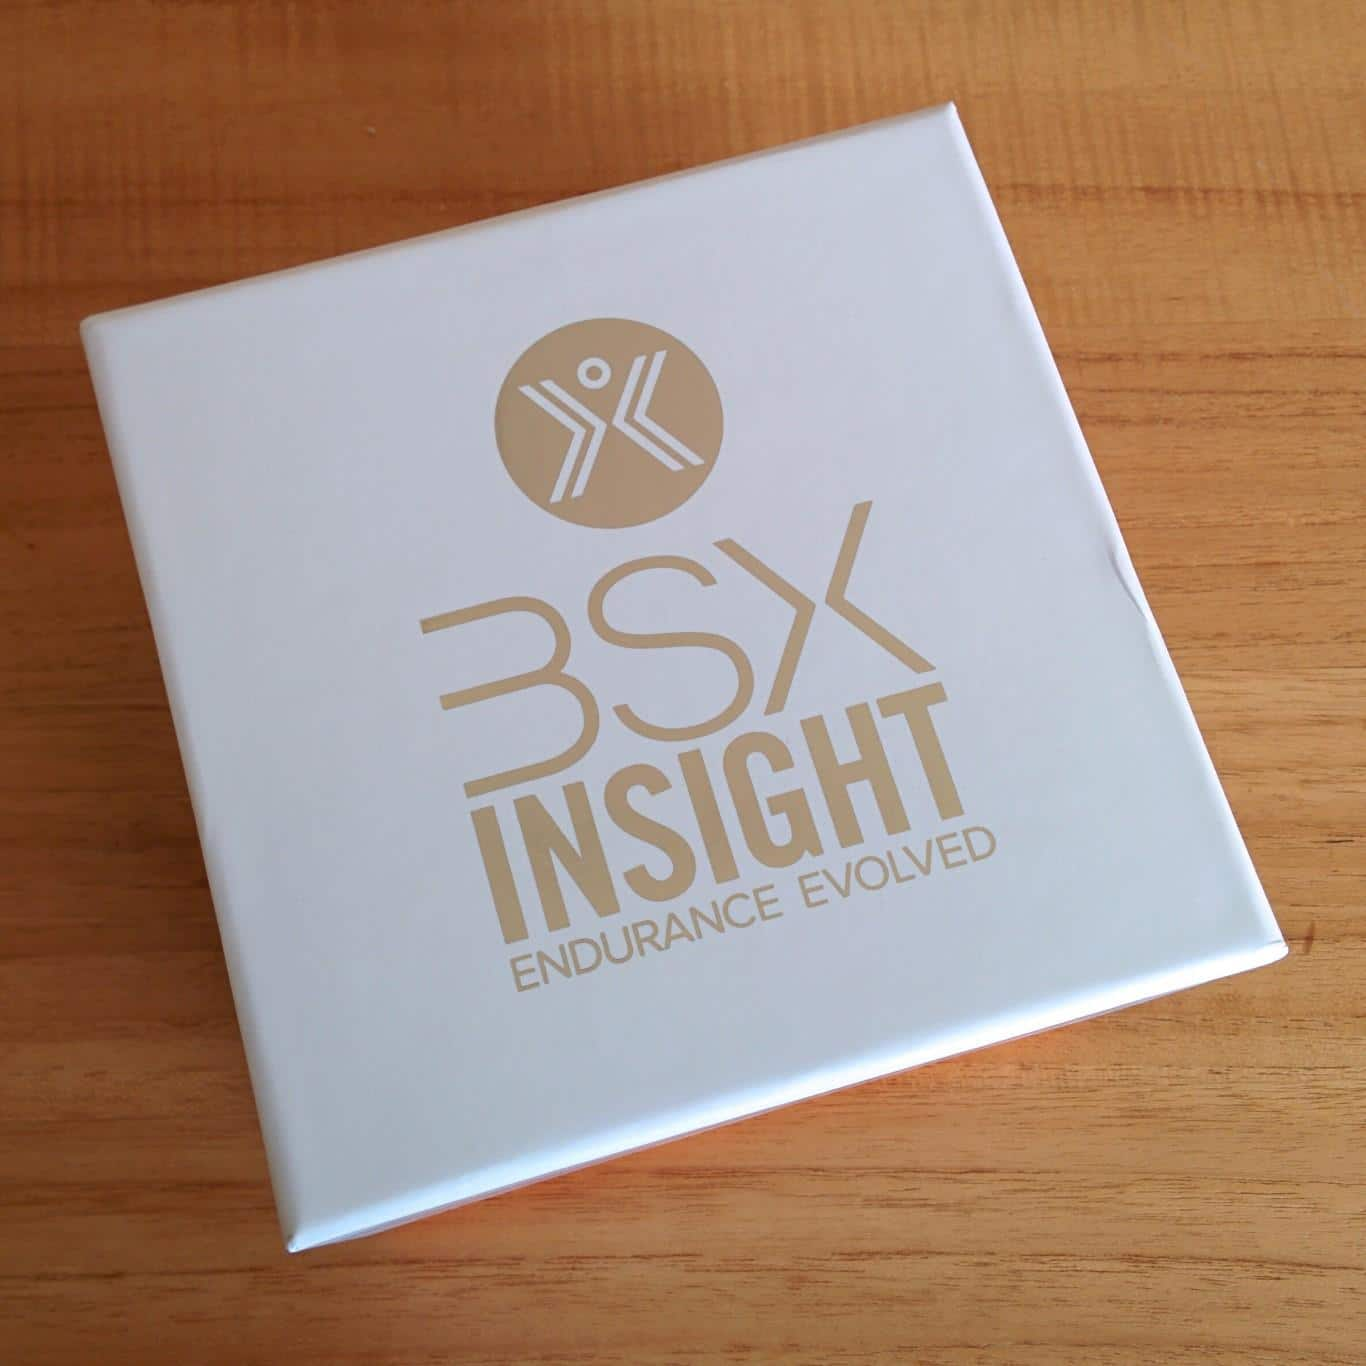 BSXinsight Karton